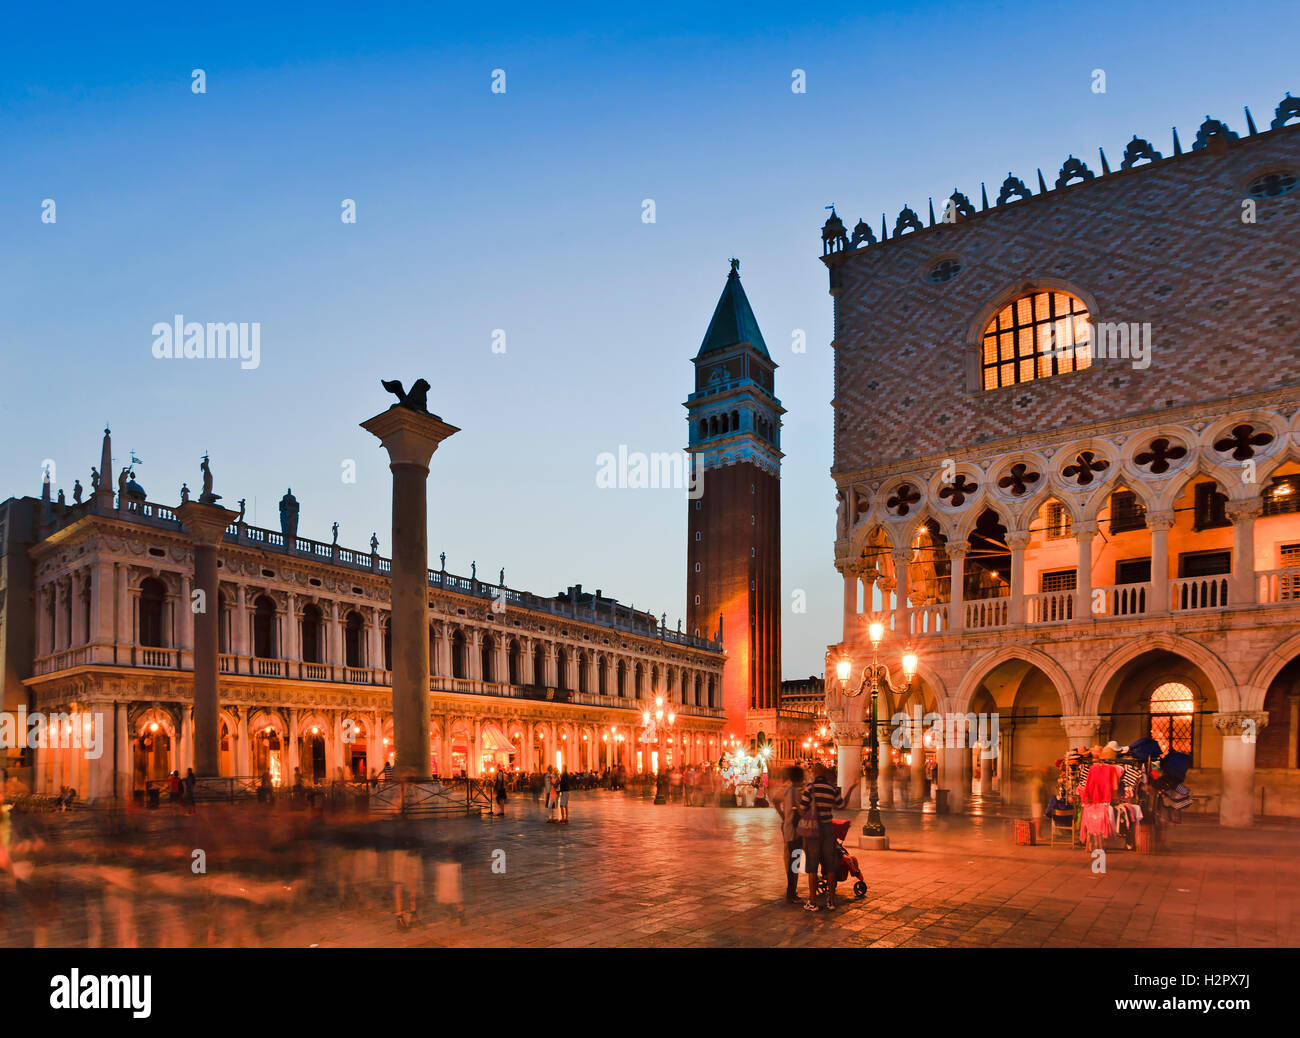 Doges palace, Campanile bell tower and Venice republic coat of arms lion on tall column at San Marco square at sunset - Stock Image